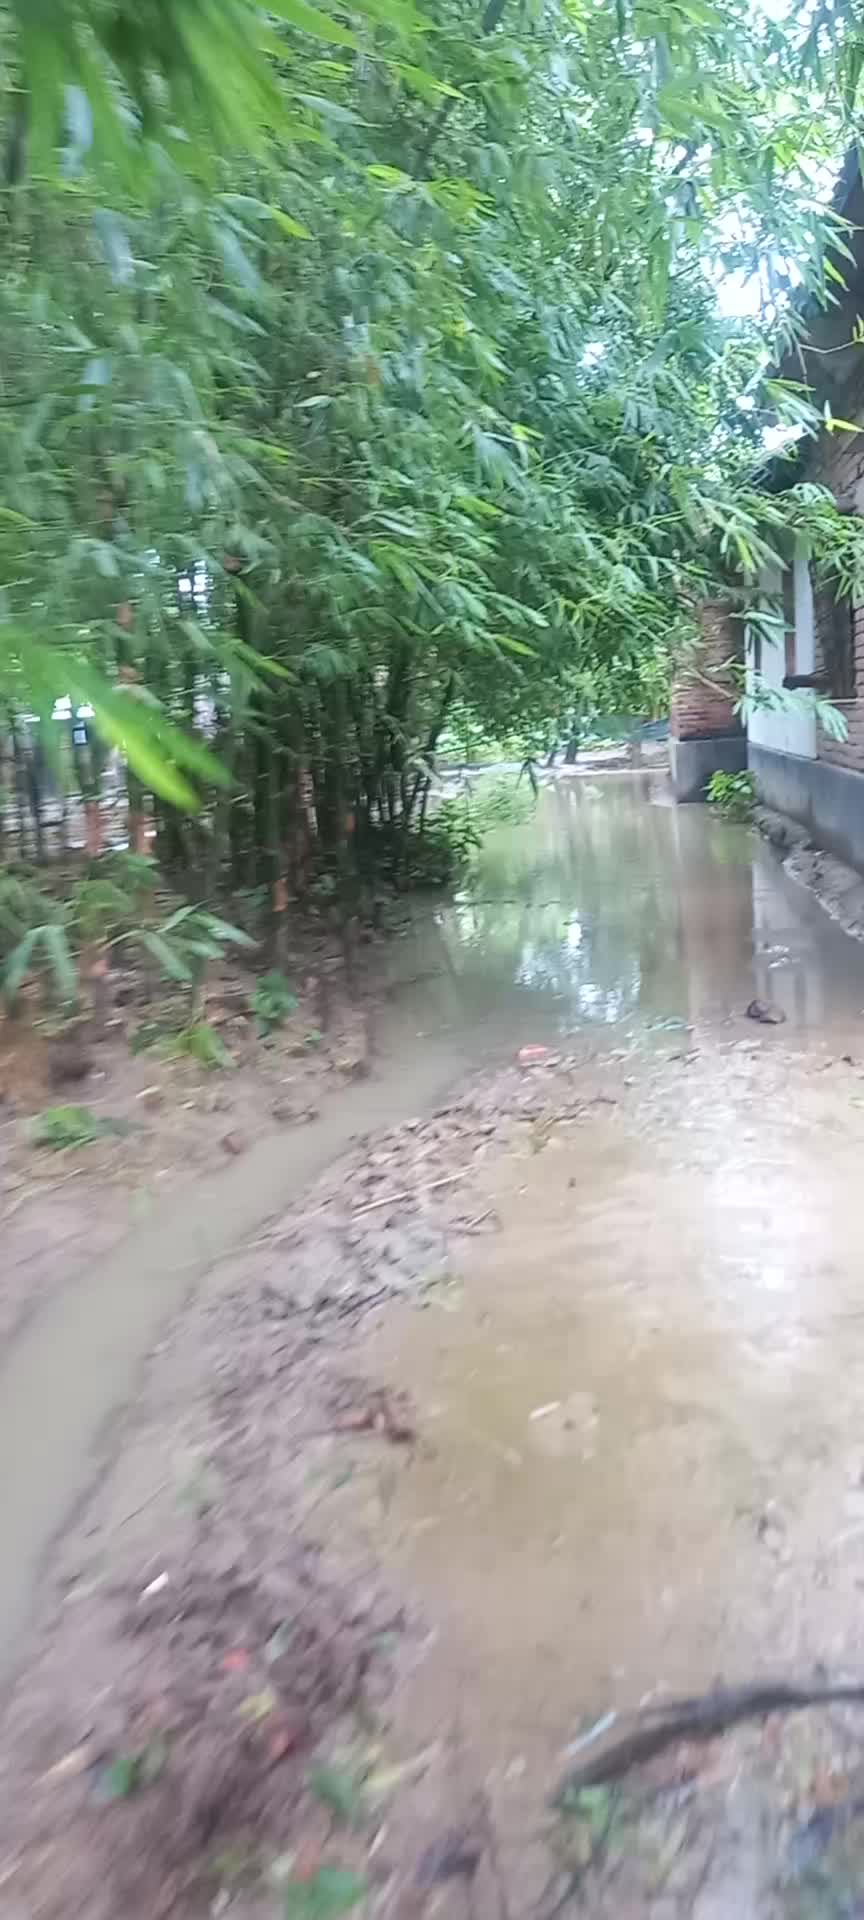 The video of the backyard of our house shows you that the backyard of the house is all submerged, the rivers and canals and the landscape of nature are all submerged.